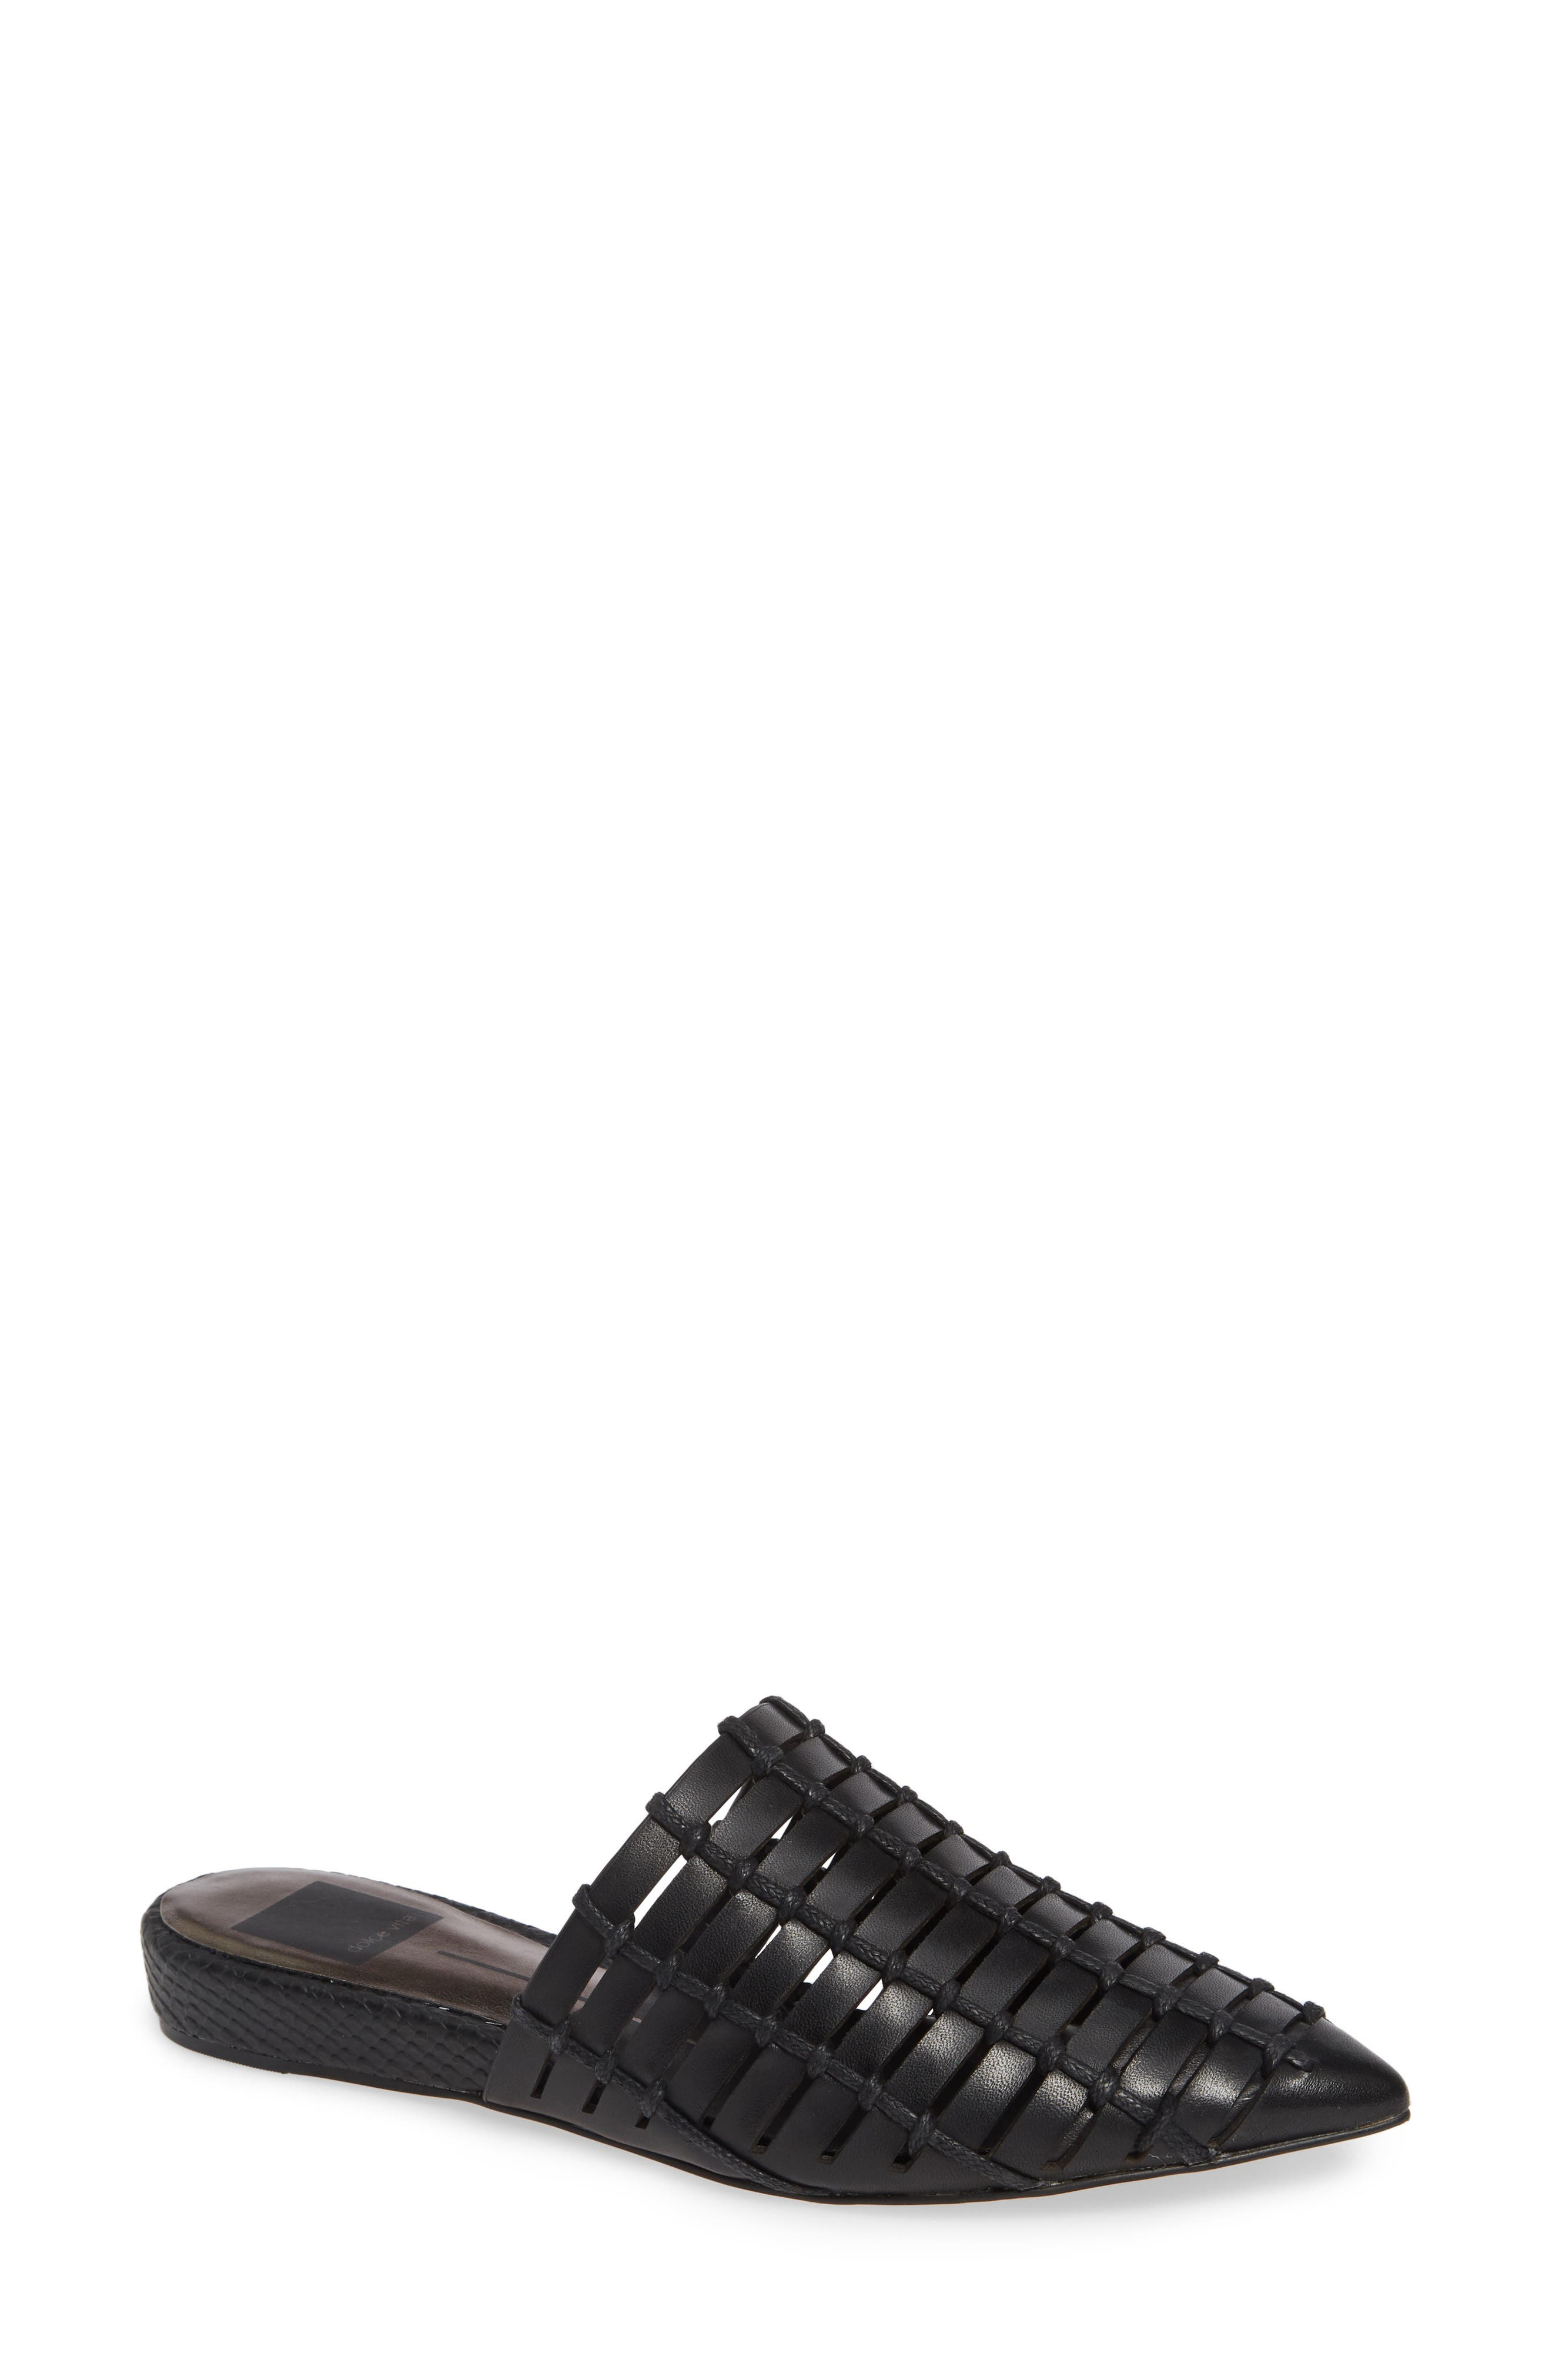 DOLCE VITA Elina Woven Mule, Main, color, BLACK LEATHER